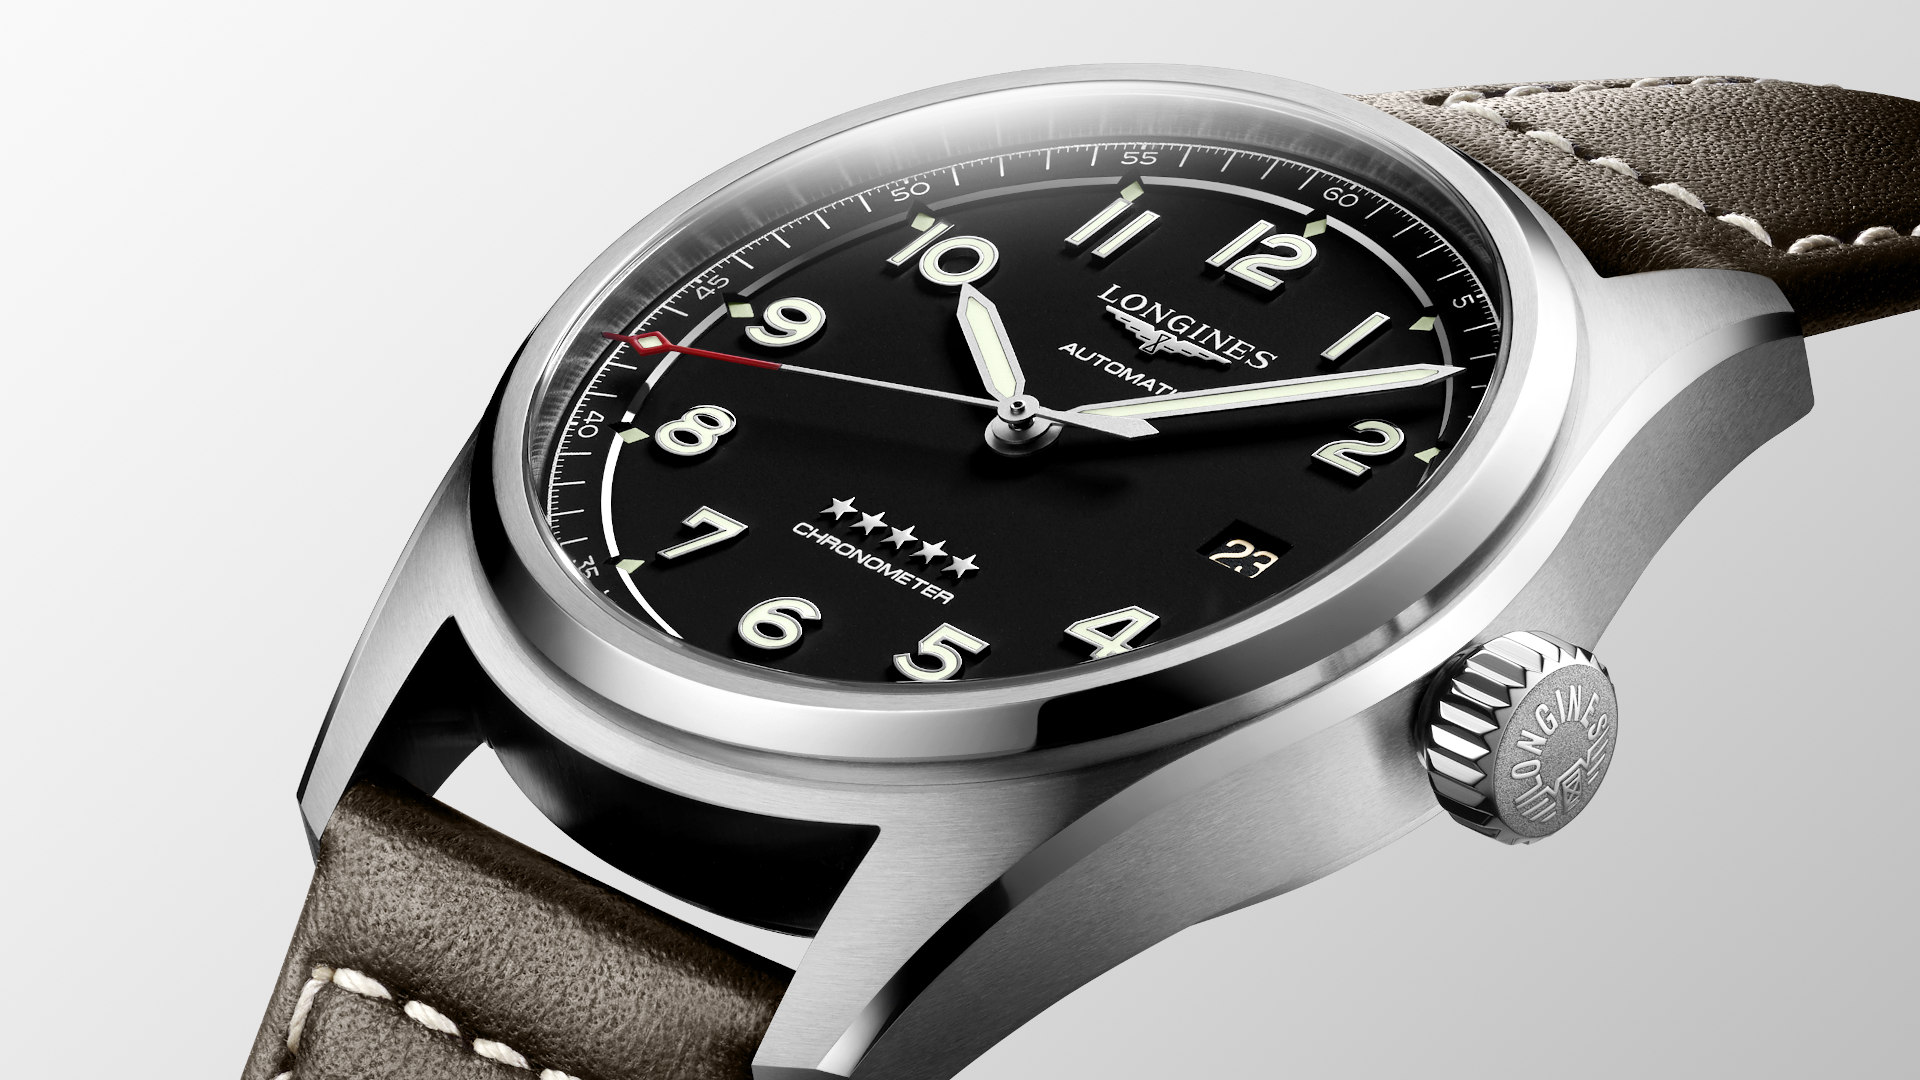 The Longines Spirit collection, inspired by aviators and explorers of the past